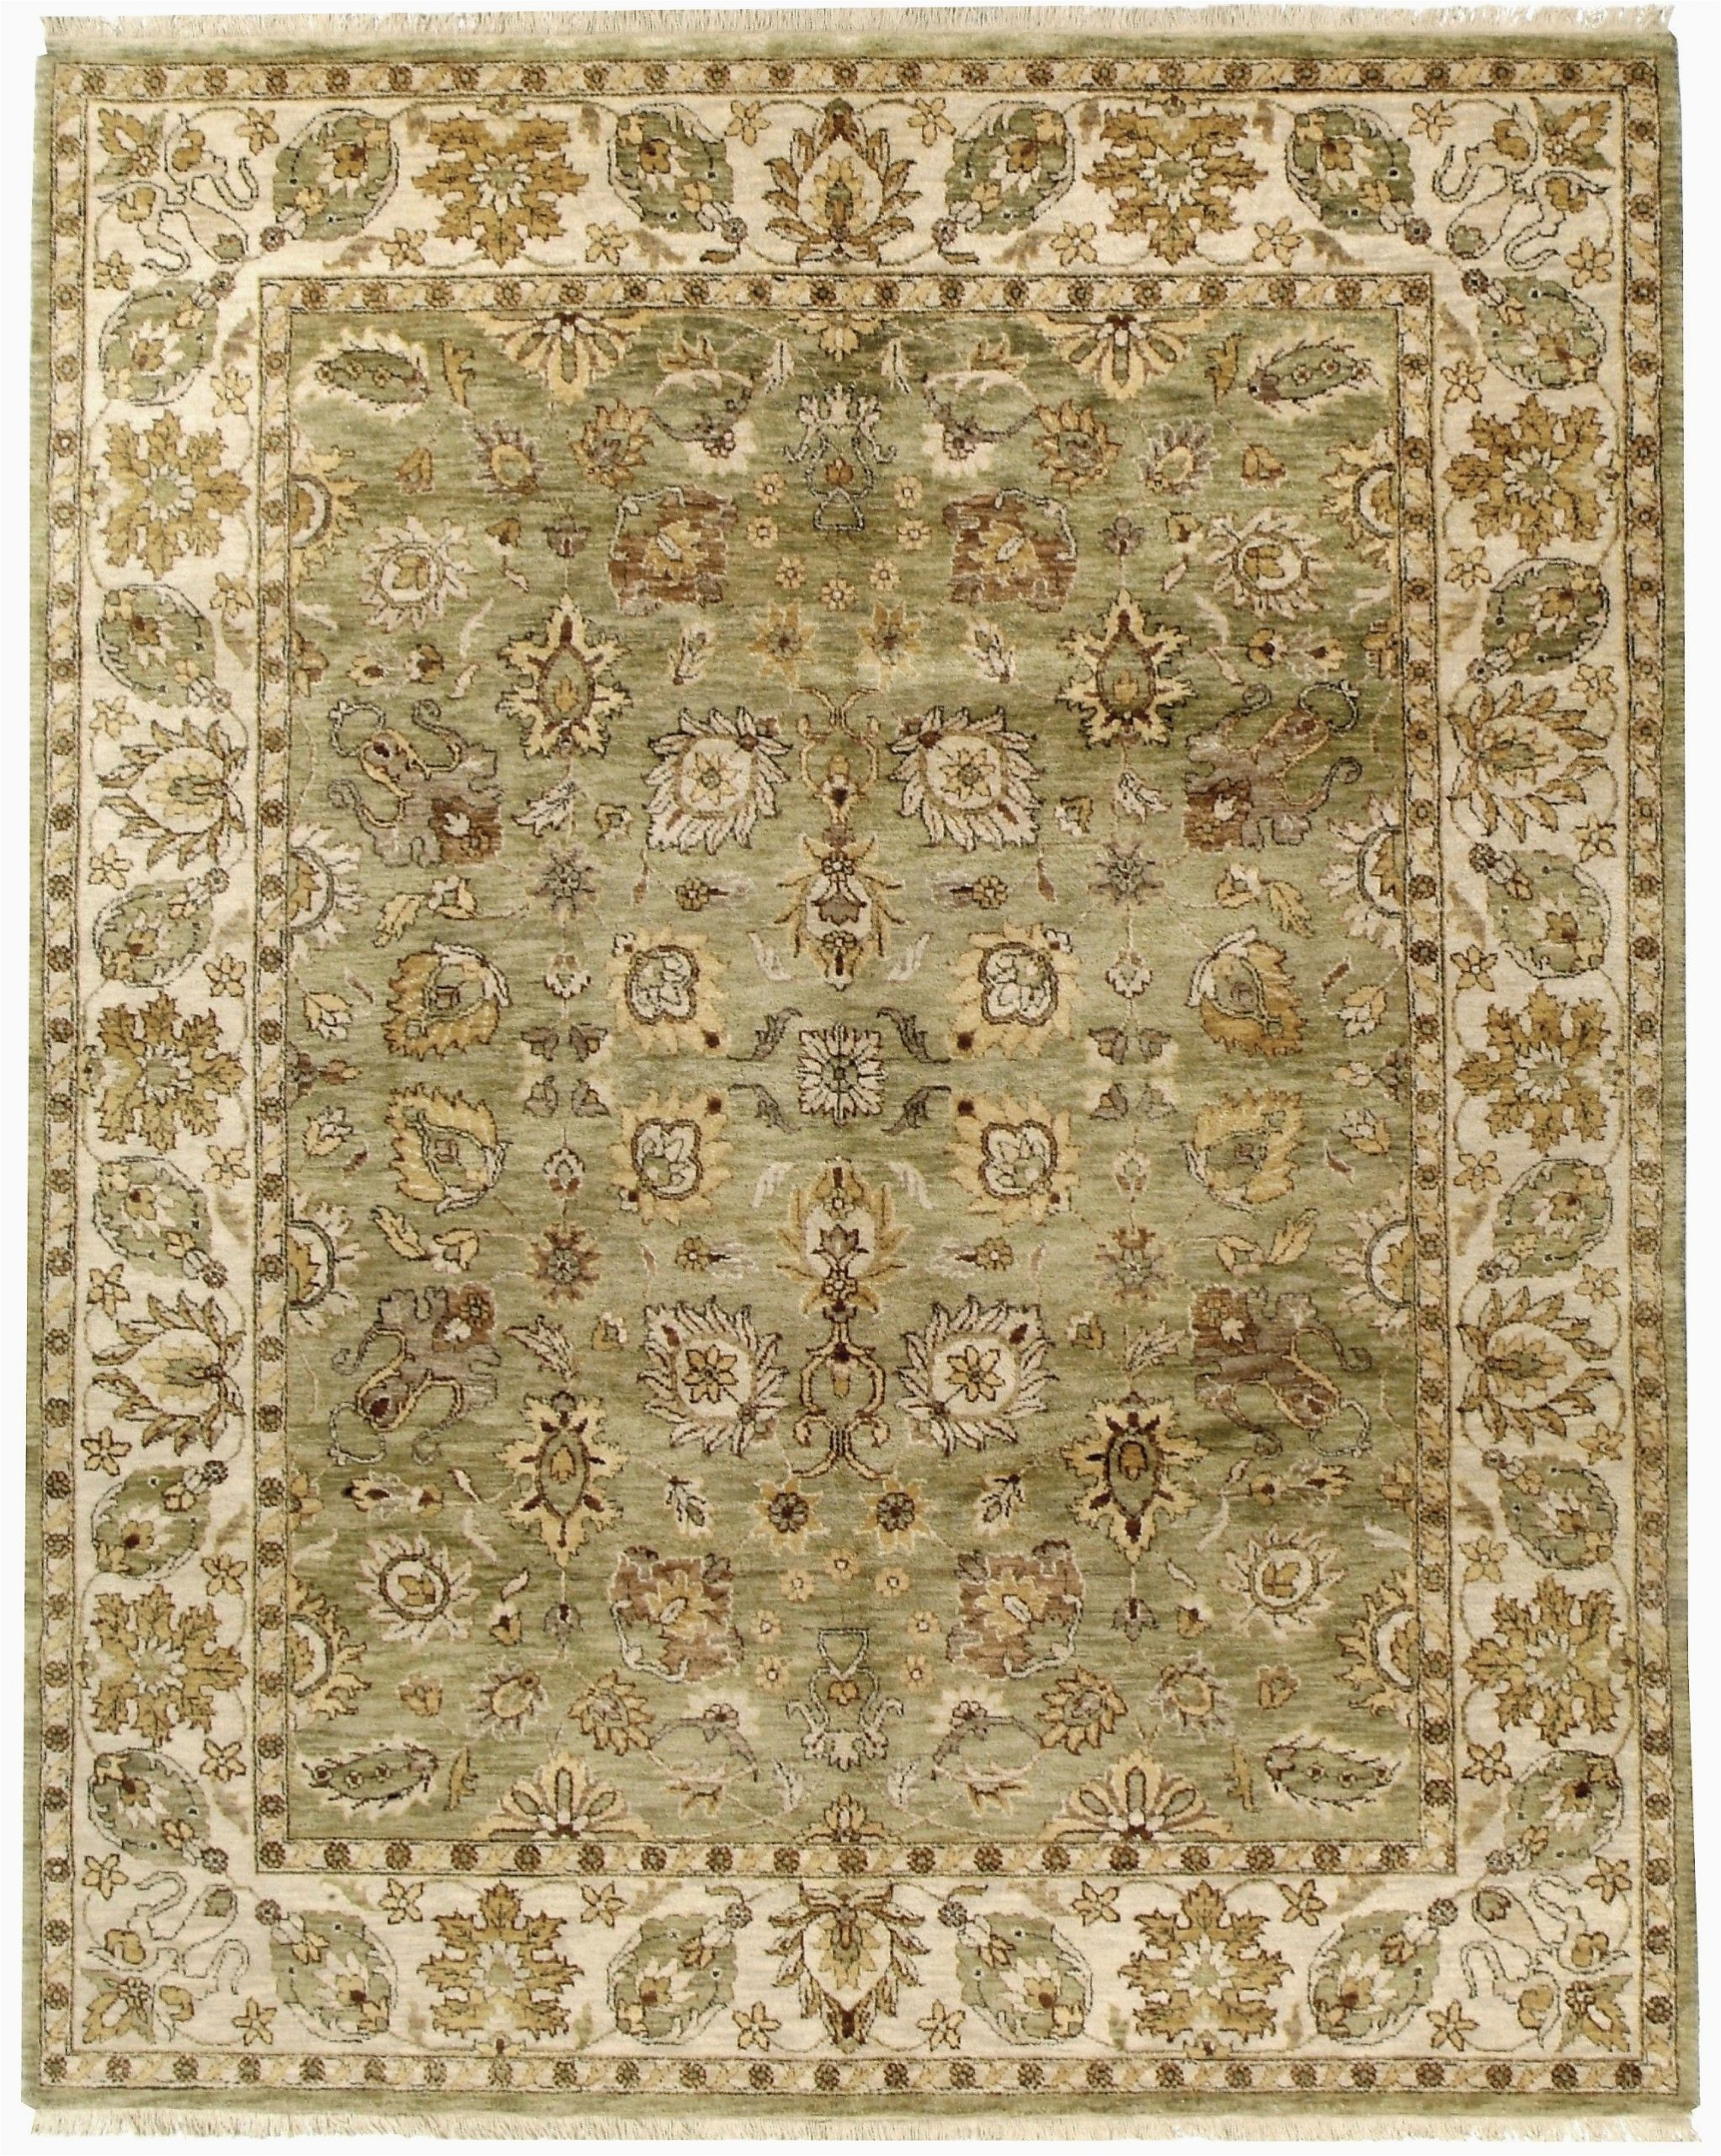 Area Rugs Green and Cream Gdpt Kashan Lt Green Cream Gdpt Kashan Lt Green Cream